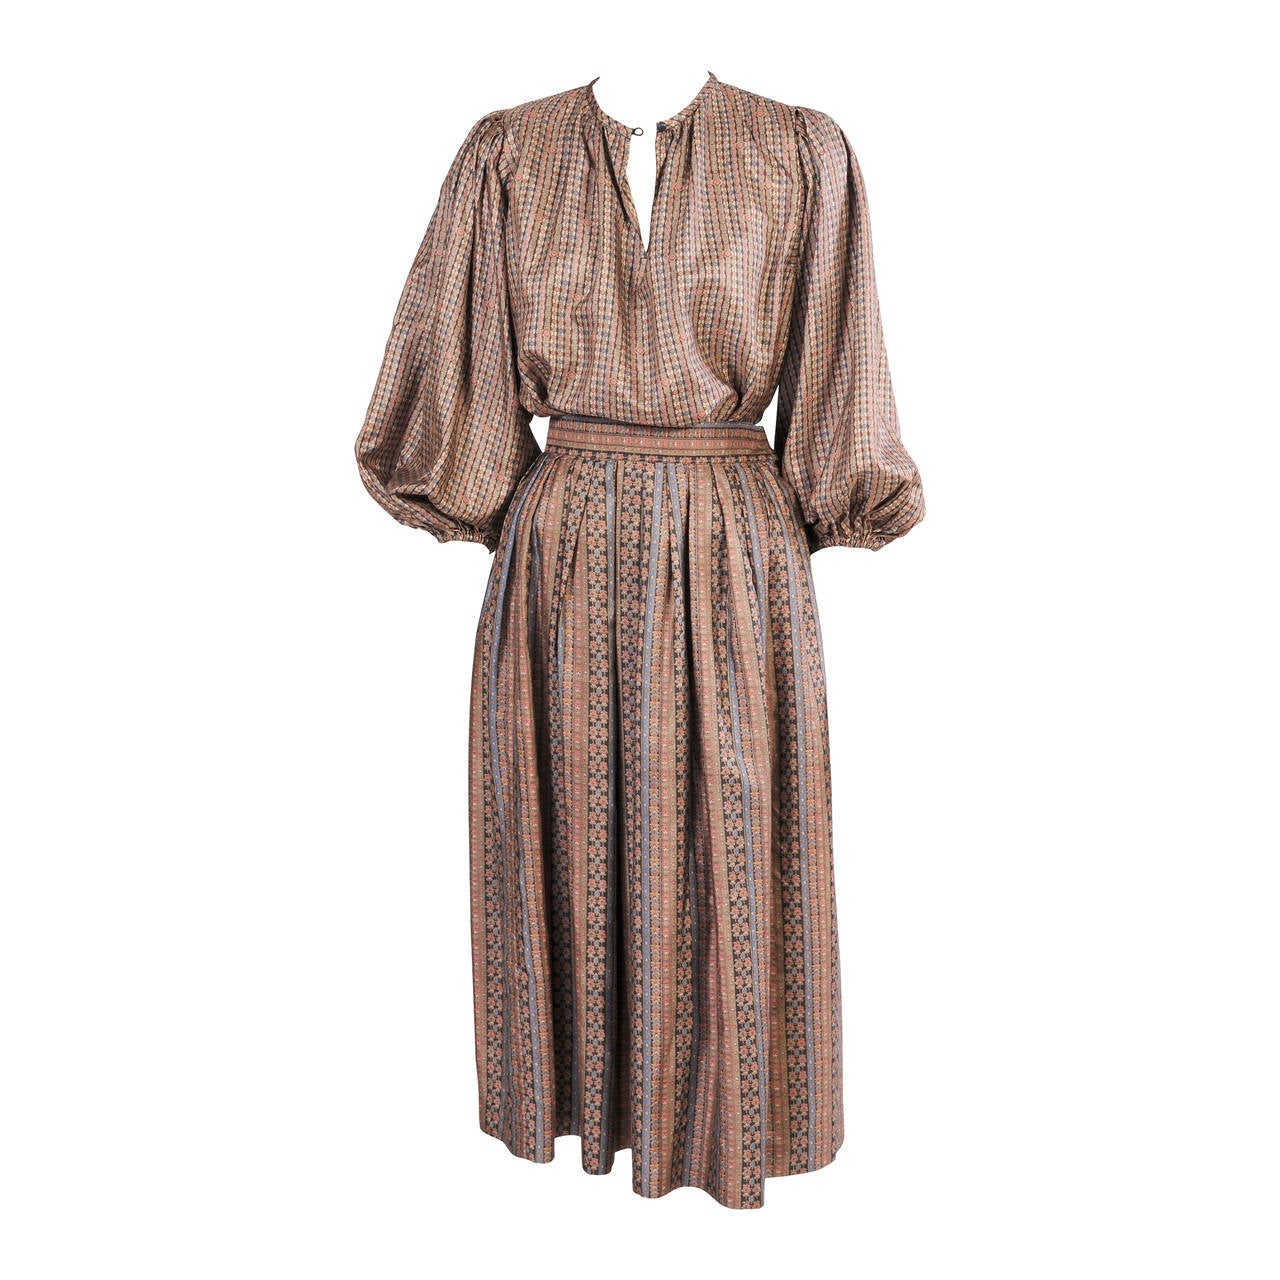 Yves Saint Laurent 1970's Russian Collection Two Piece Silk Dress 1